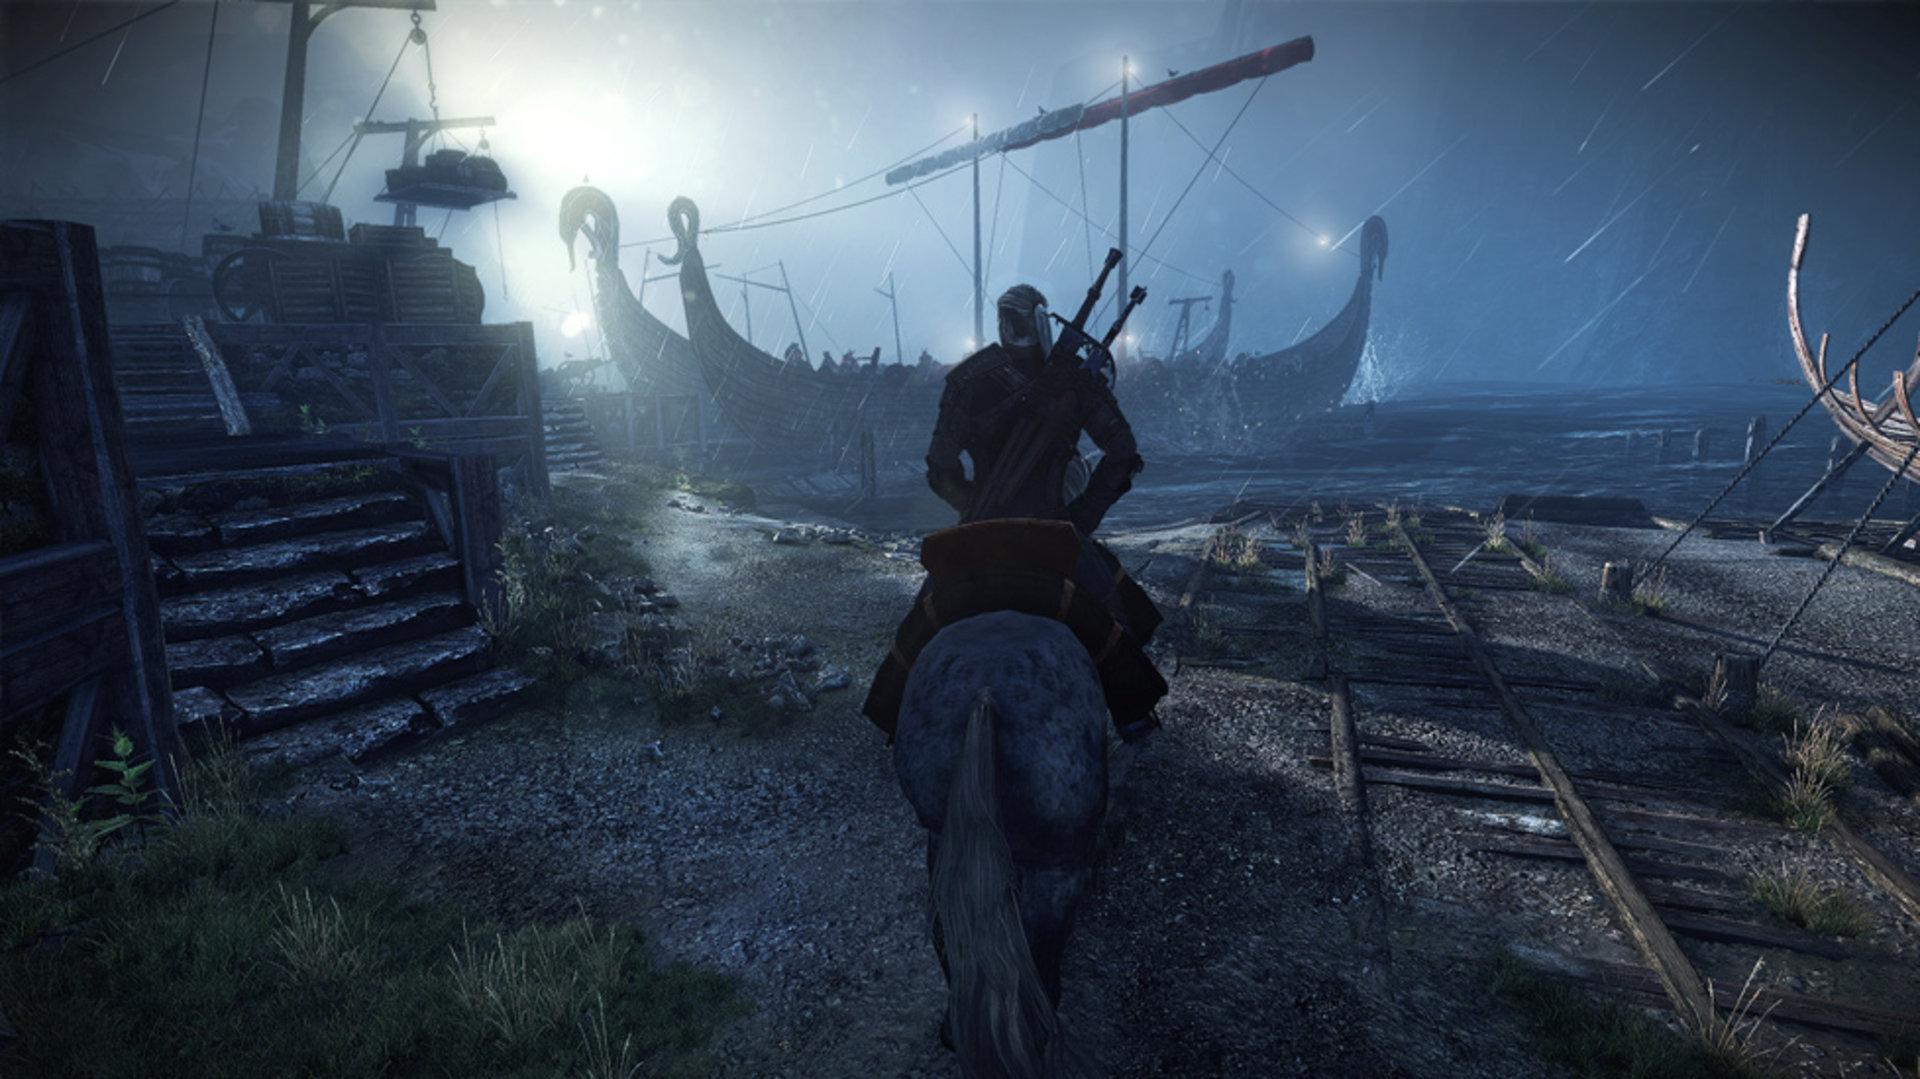 Dev says The Witcher 3 1080p resolution on console is not